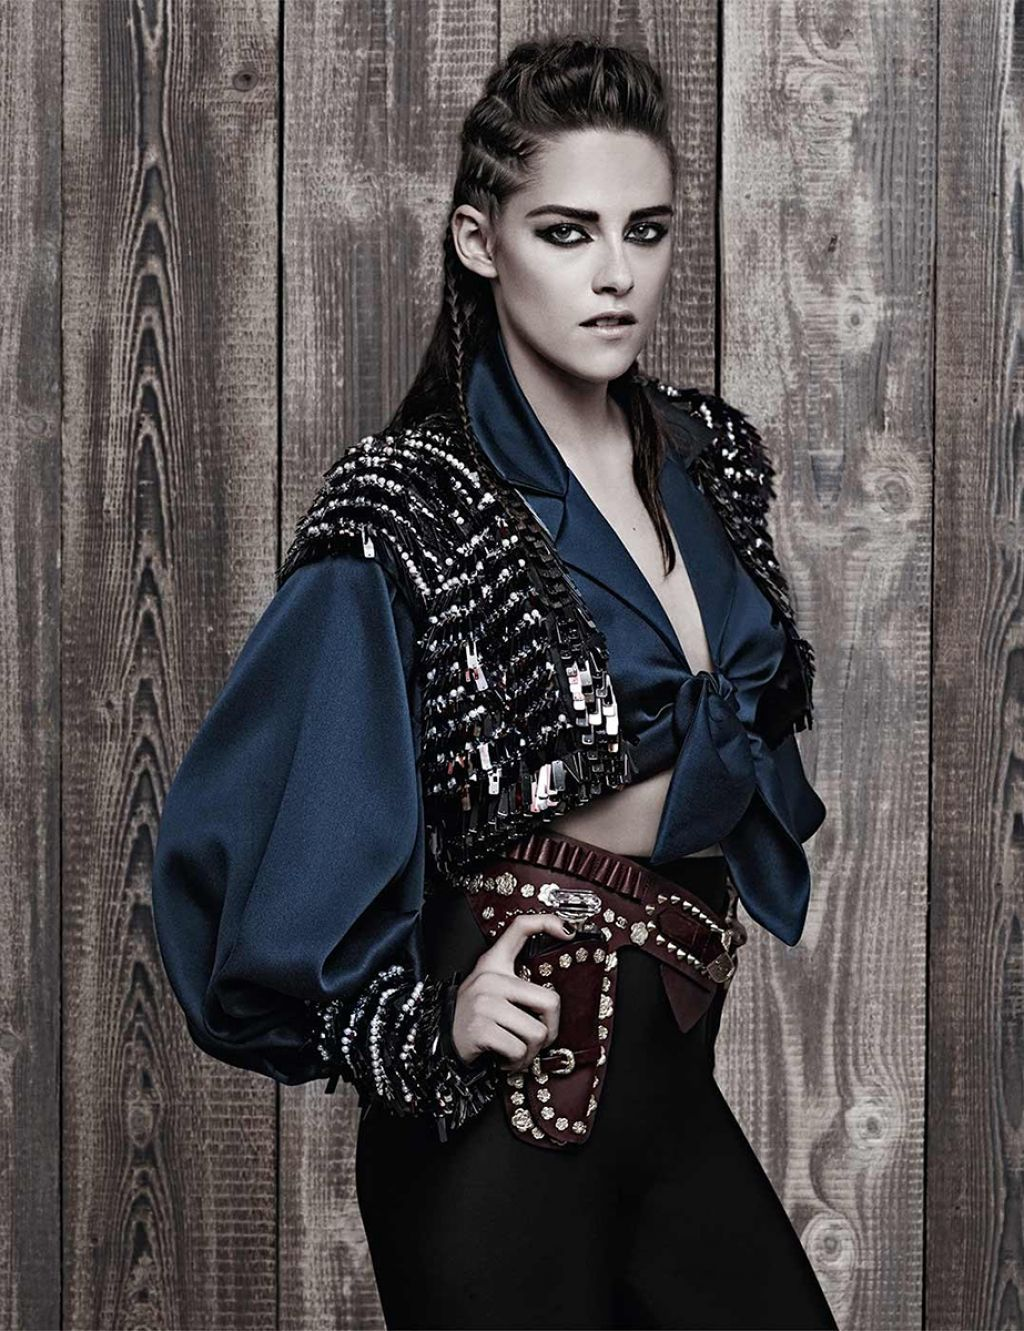 Photoshoot For Vogue Magazine November 2015: Karl Lagerfield Photoshoot For Chanel